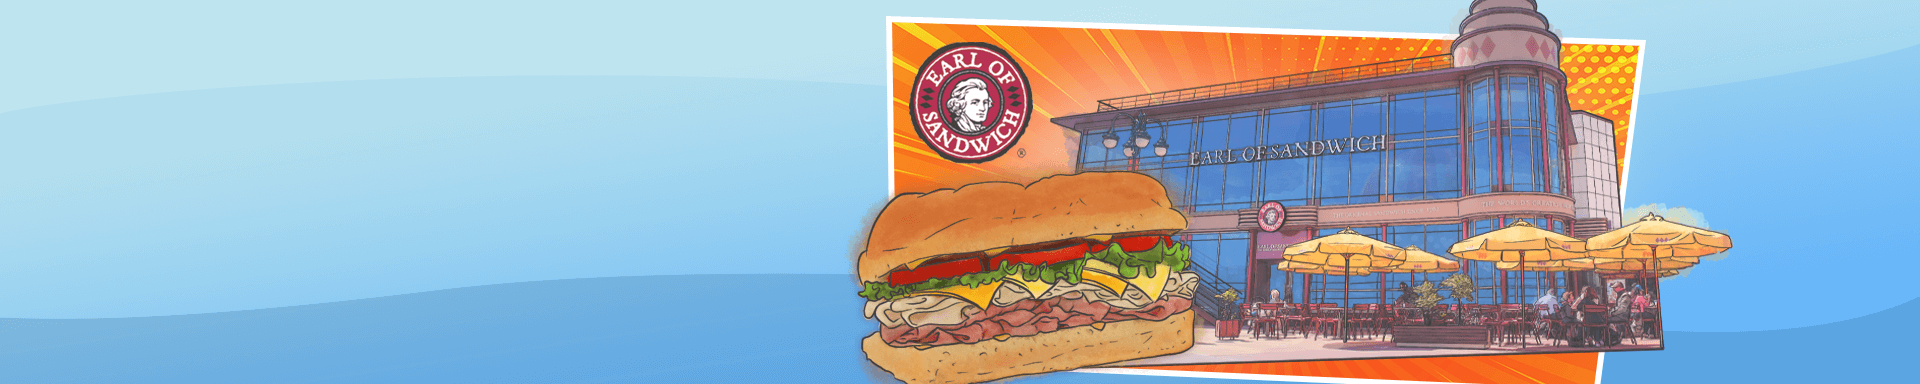 Exclusive 15% discount at Earl of Sandwich Disneyland® Paris